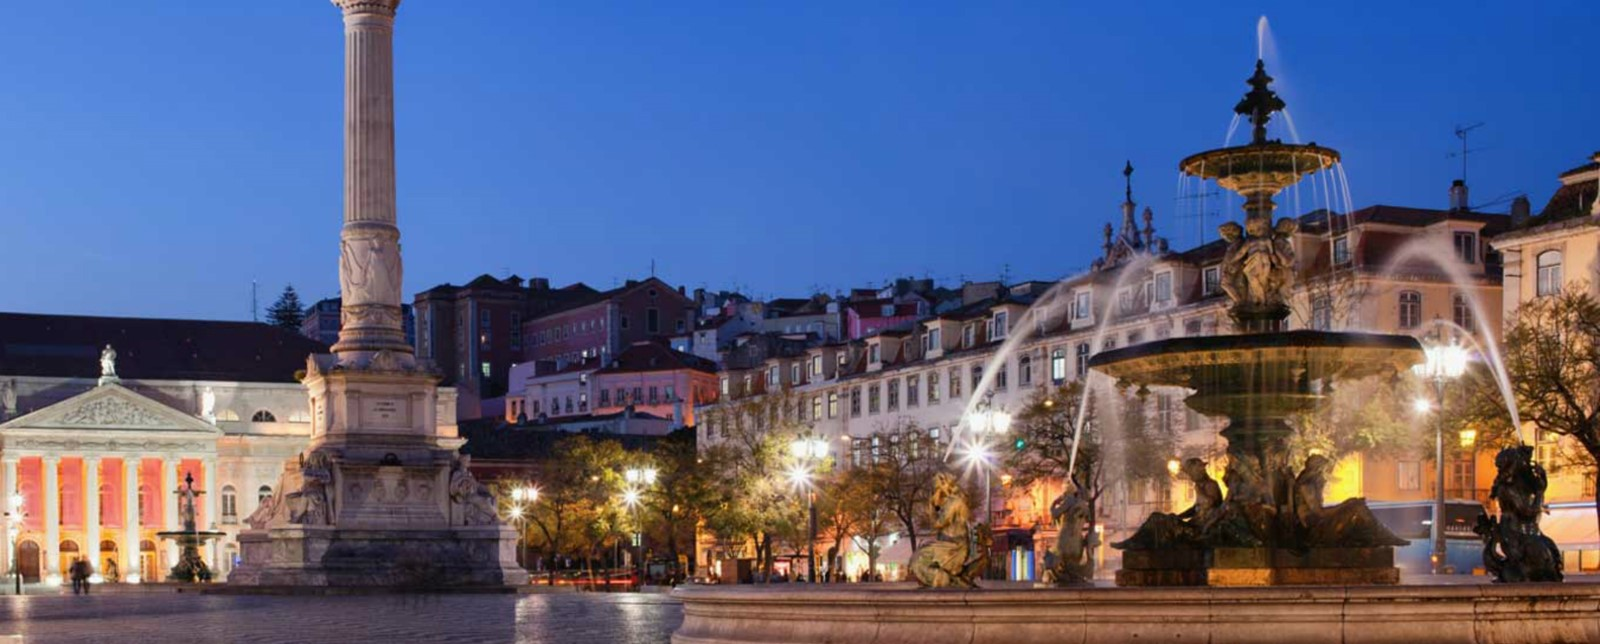 A patterned floored square in Lisbon with a fountain